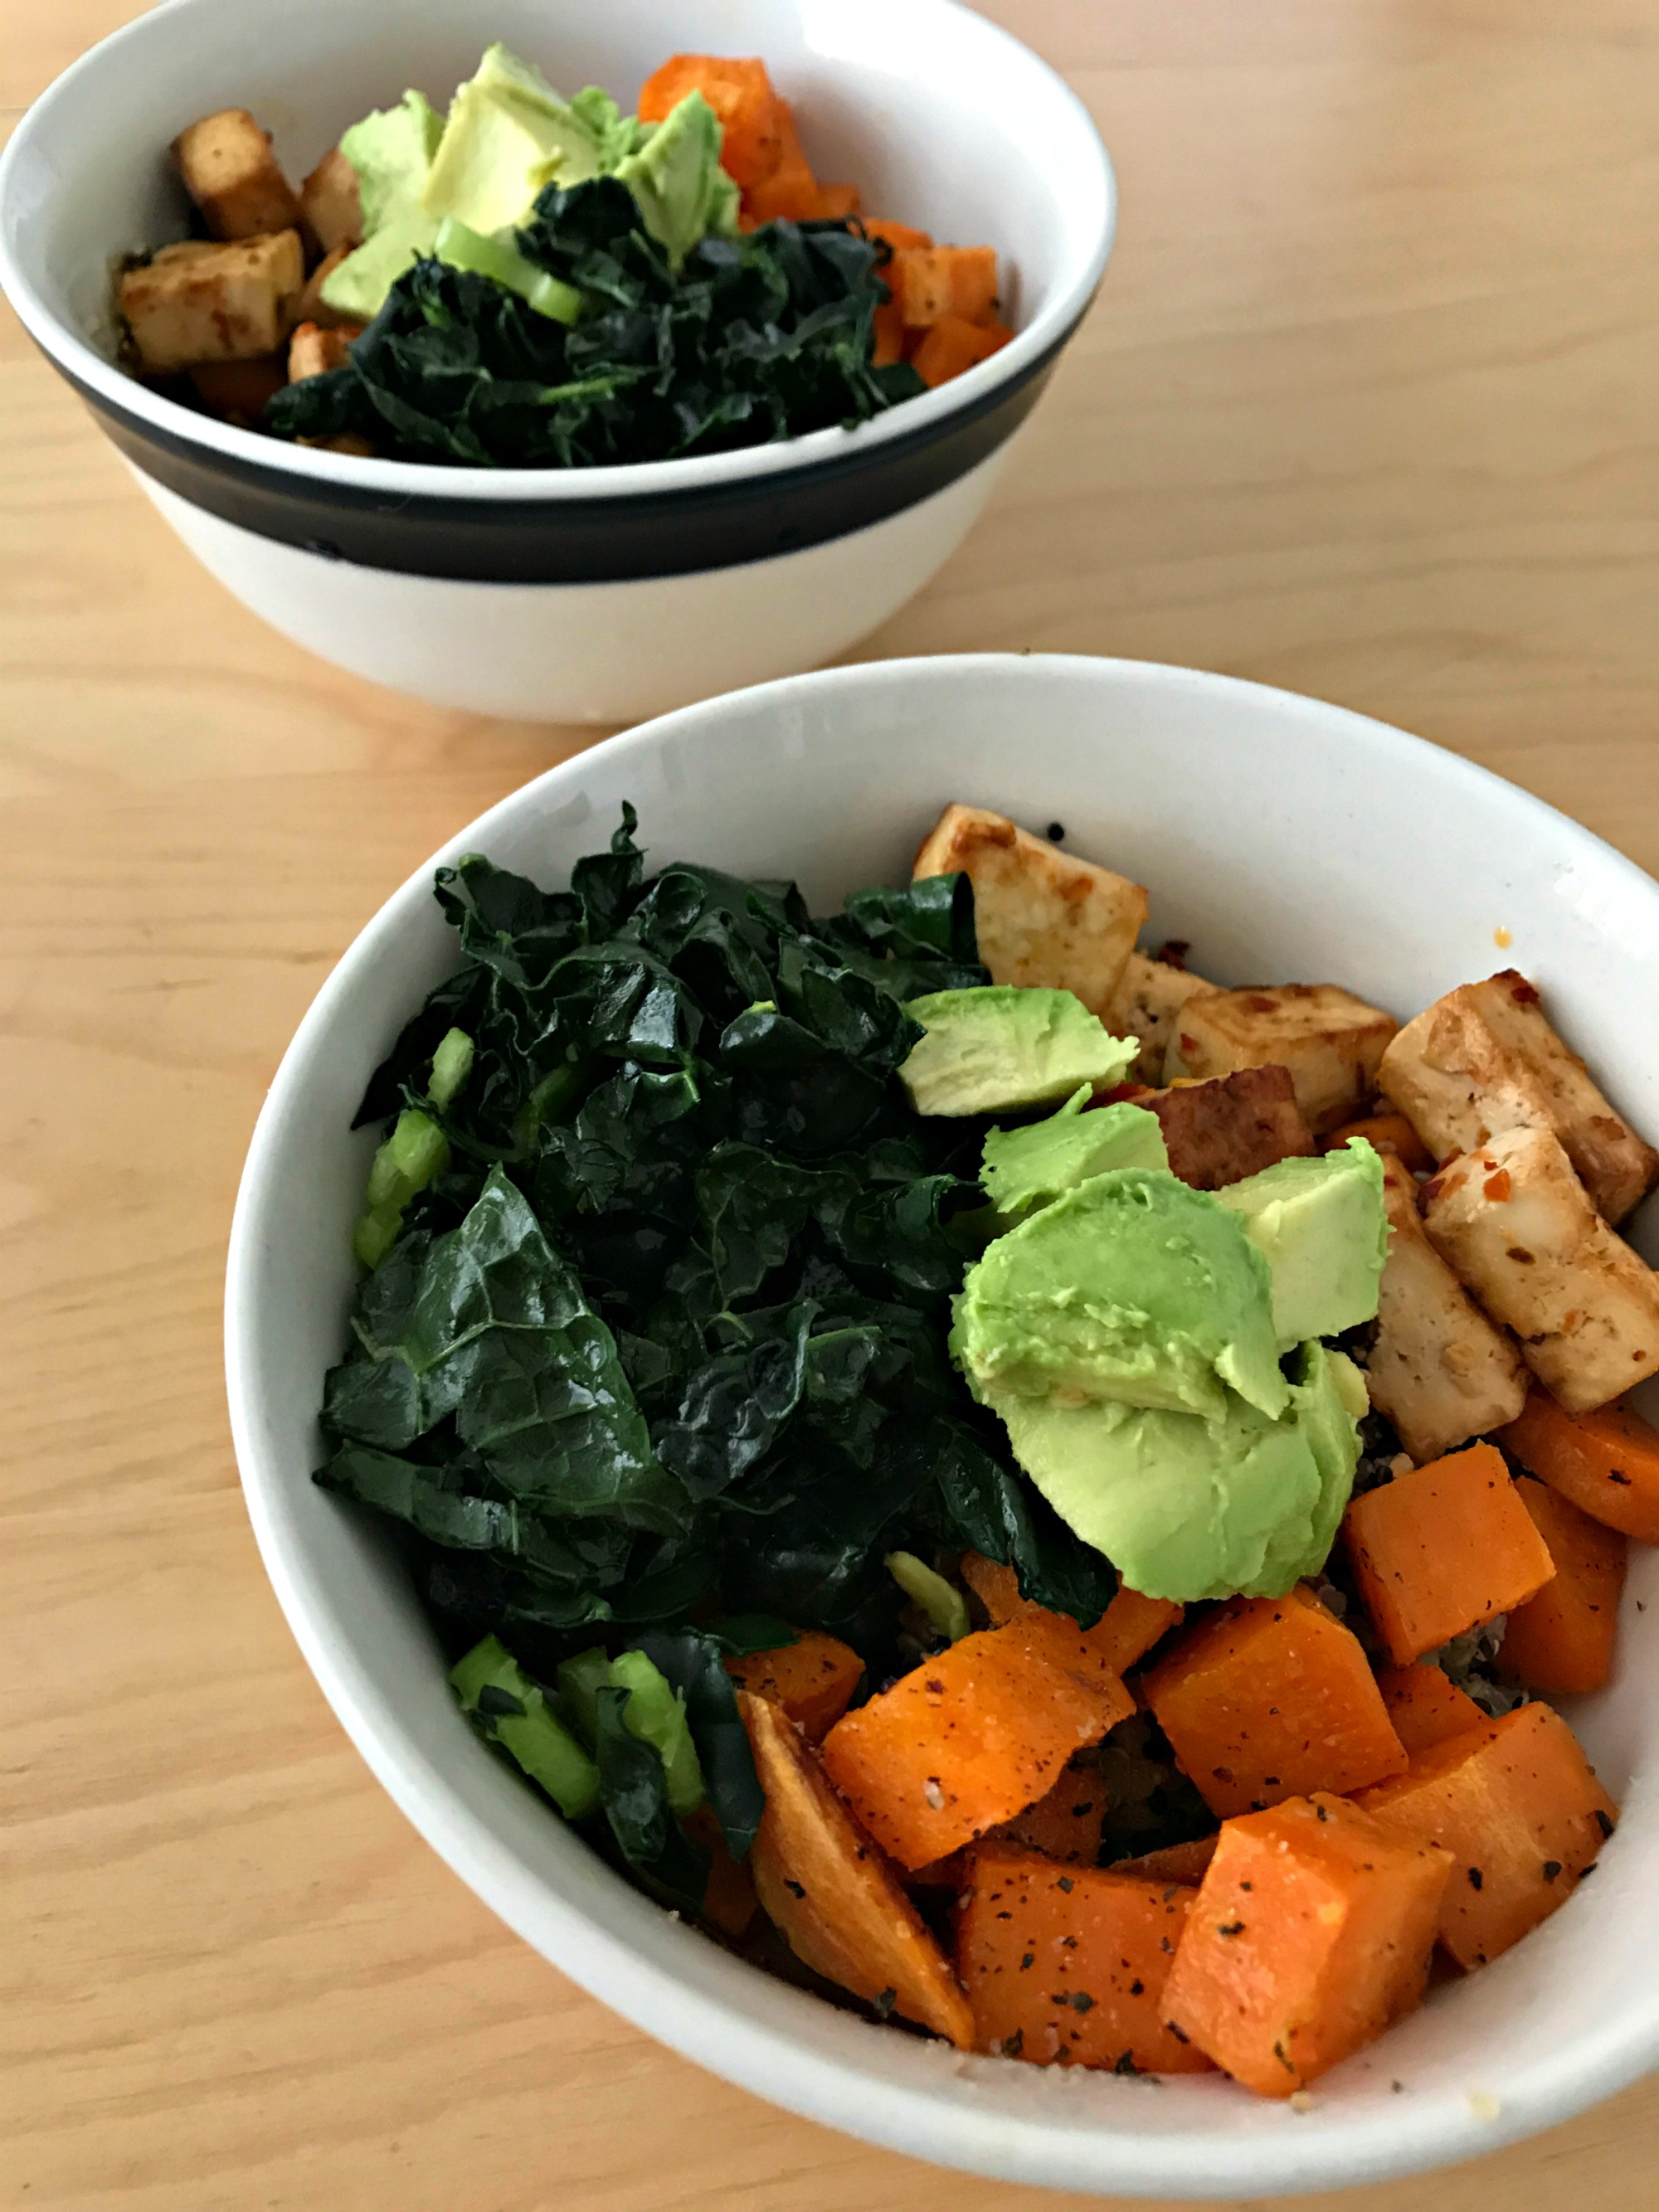 I Tried Cooking Like Bobby Flay For a Week: Quinoa Bowls